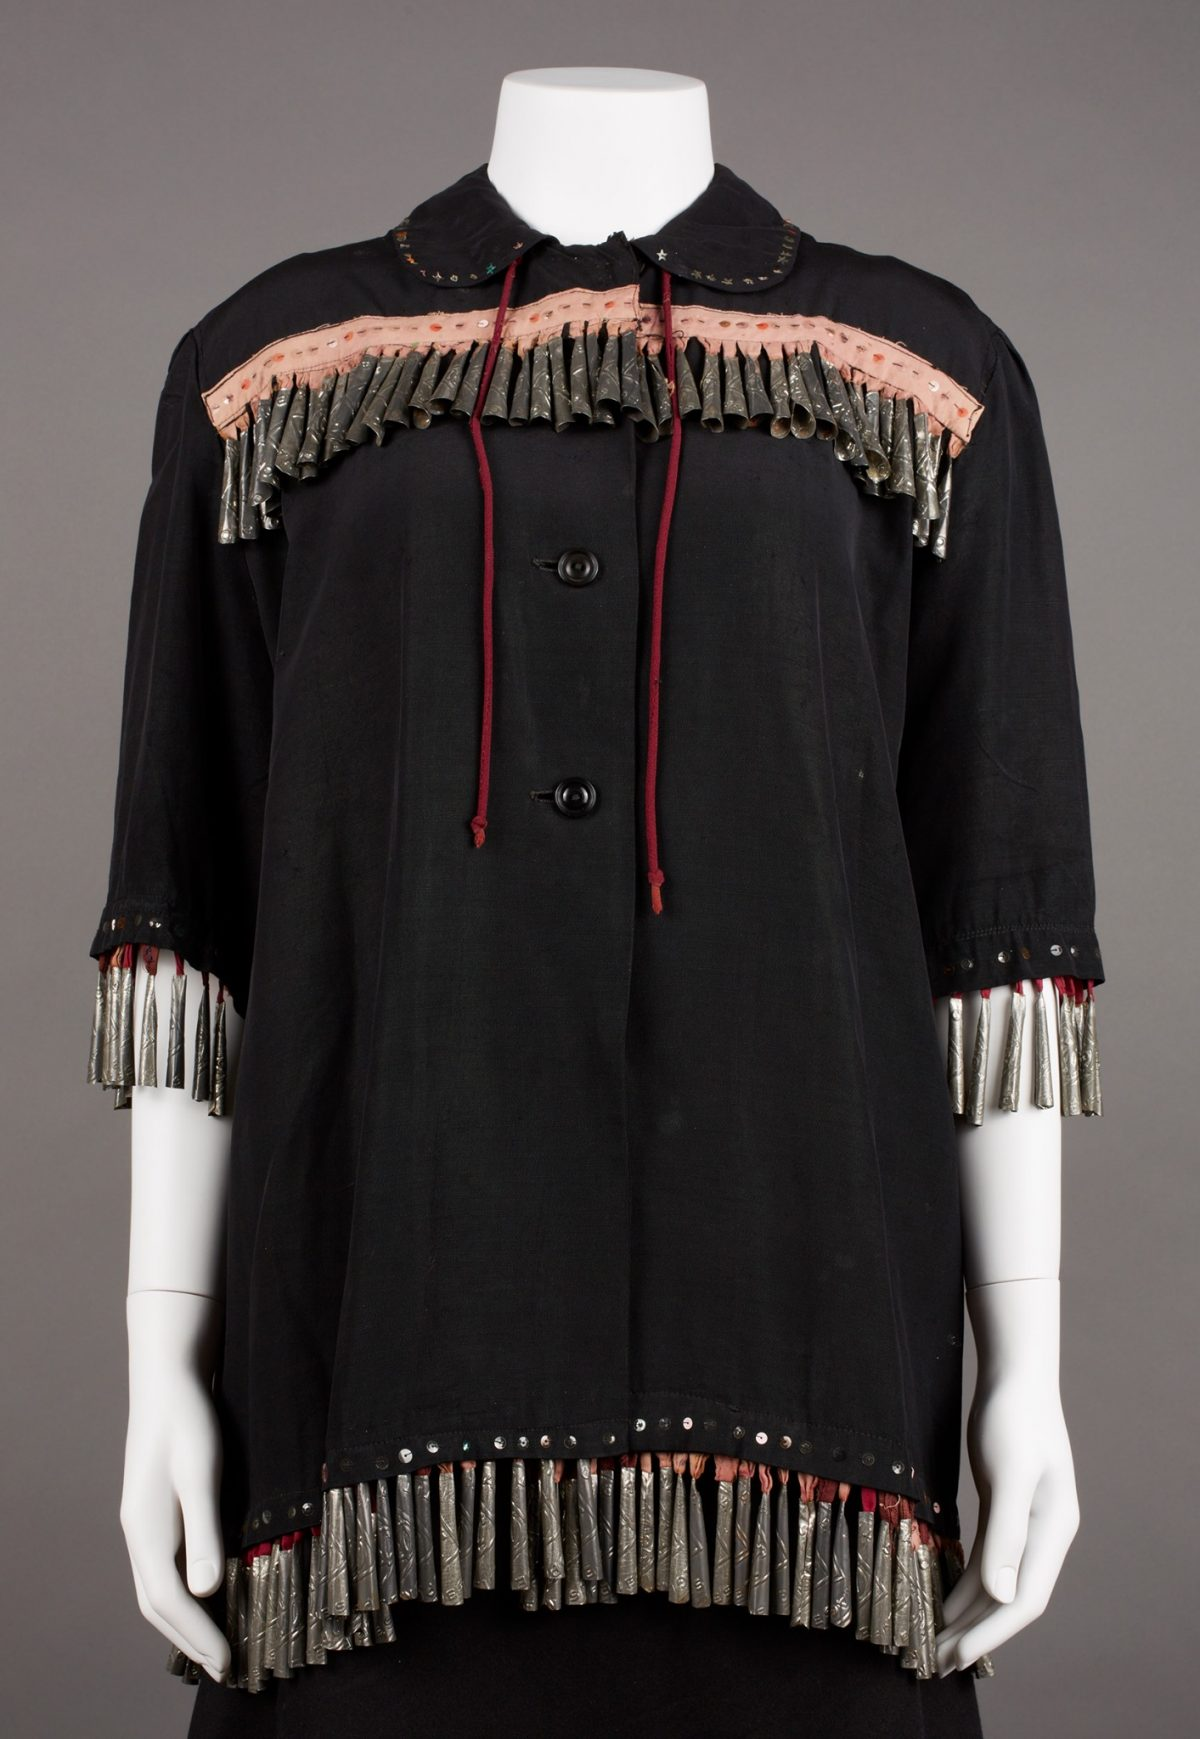 Ojibwa artist, Blouse, 30 x 39 inches, cotton, plastic buttons, tin, and sequins. A black, hip length shirt with elbow length sleeves and a small, rounded collar. Patterned metal jingles set closely together hang from a short yoke edged with a faded peach strip of fabric, stitched and embellished with sequins. The round collar is edged with star shaped sequins and has two long strings that hang to mid garment. Two large black buttons fasten the shirt at mid chest. The sleeves and hem are also edged in evenly spaced sequins. More jingles drop from under the sleeve and garment hem suspended by cloth loops, their colors now ranging from red to faded peach. The shirt's hem dips slightly at the sides approximately reaching the wearer's finger tips.